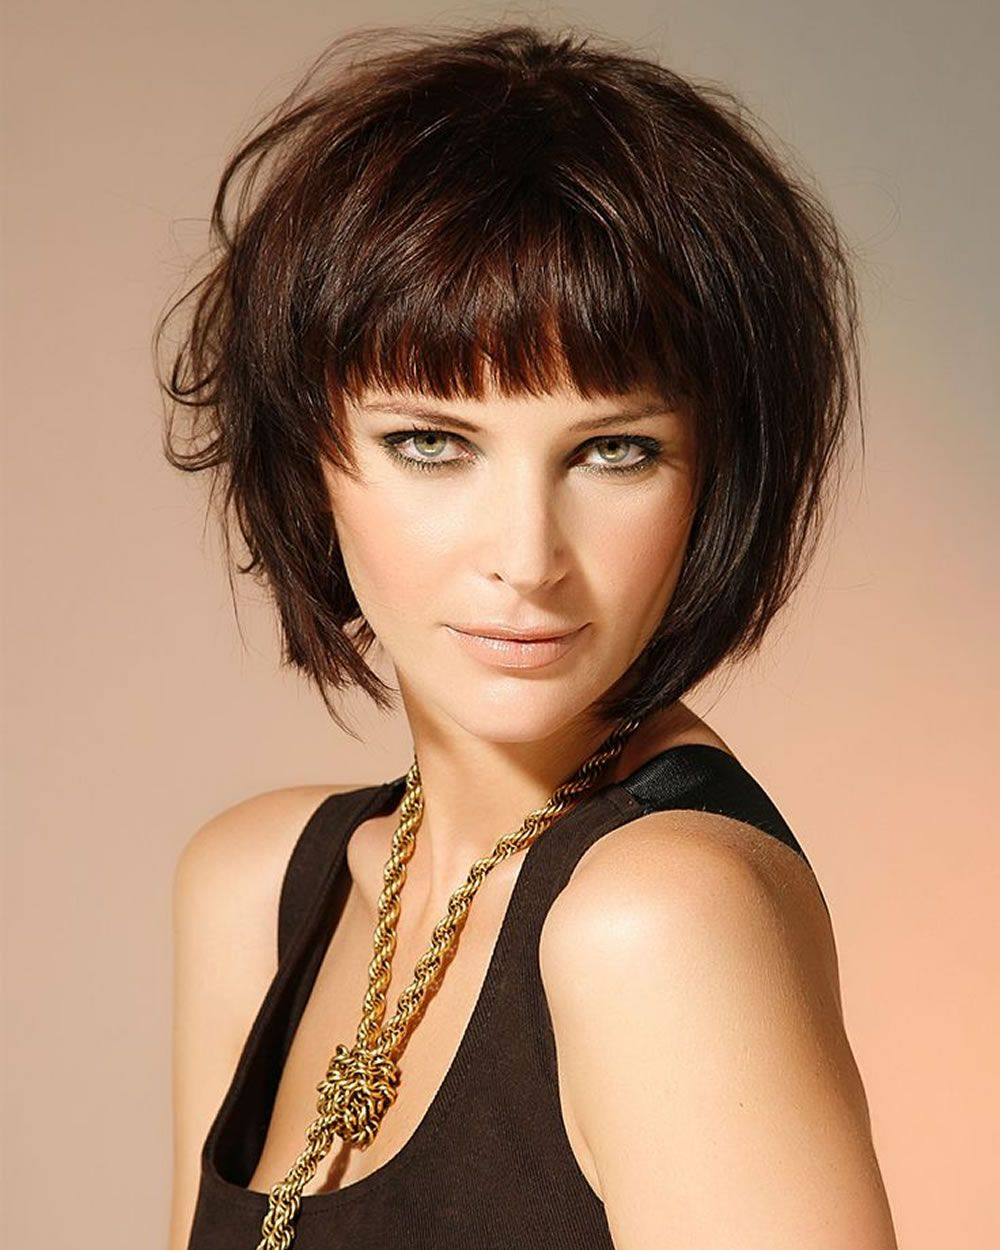 19+ Short hairstyles with bangs and layers ideas in 2021